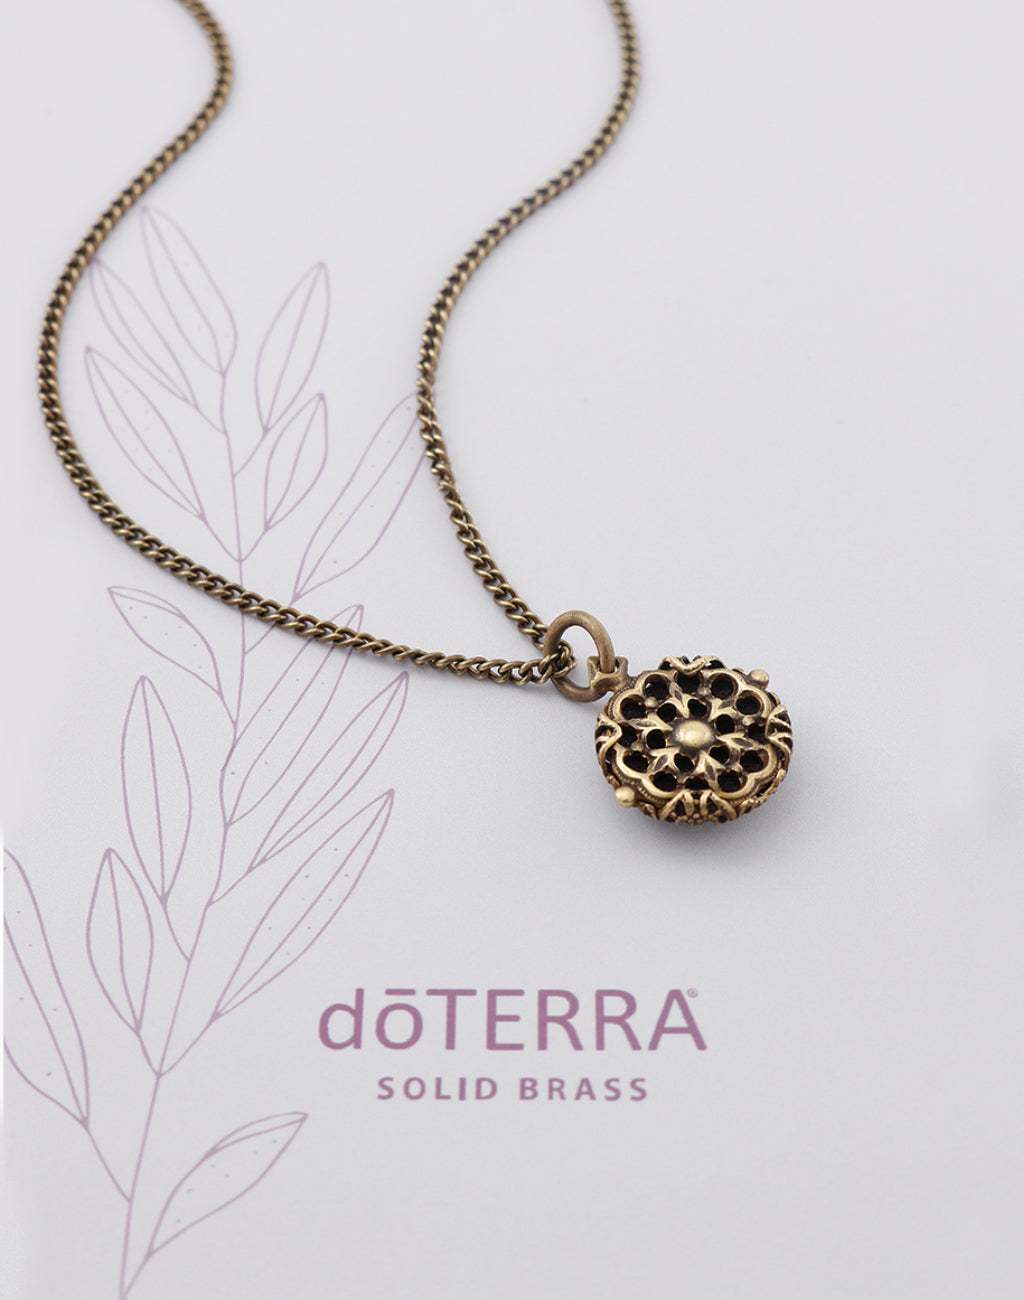 doTERRA GUIDE Diffuser Necklace